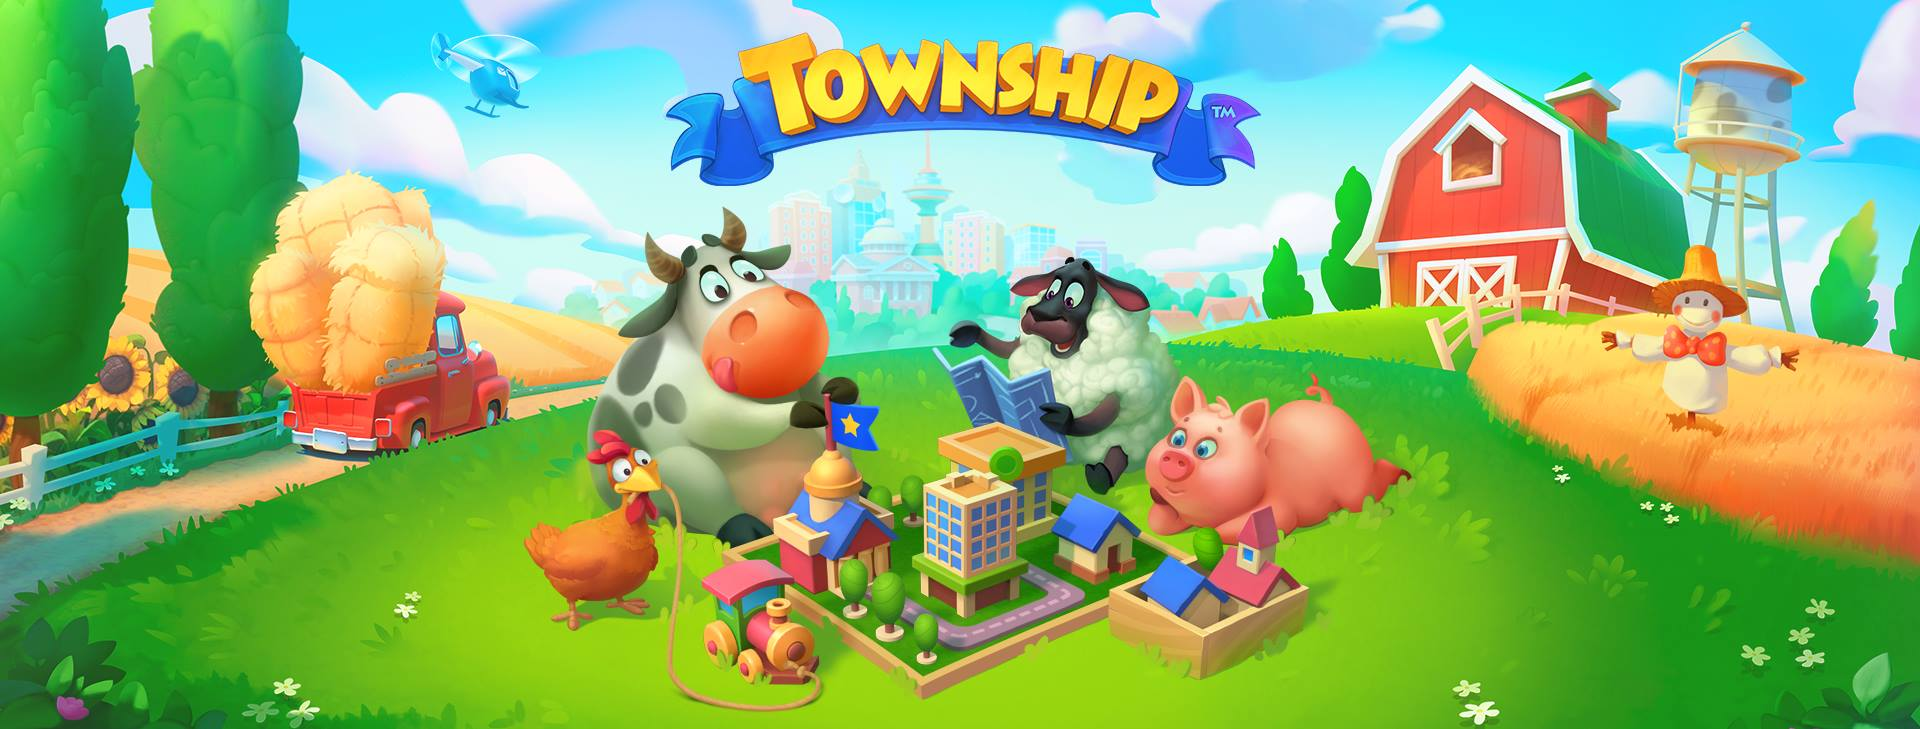 Wiki Updates - Township | Wiki, Events, Guides and Tips